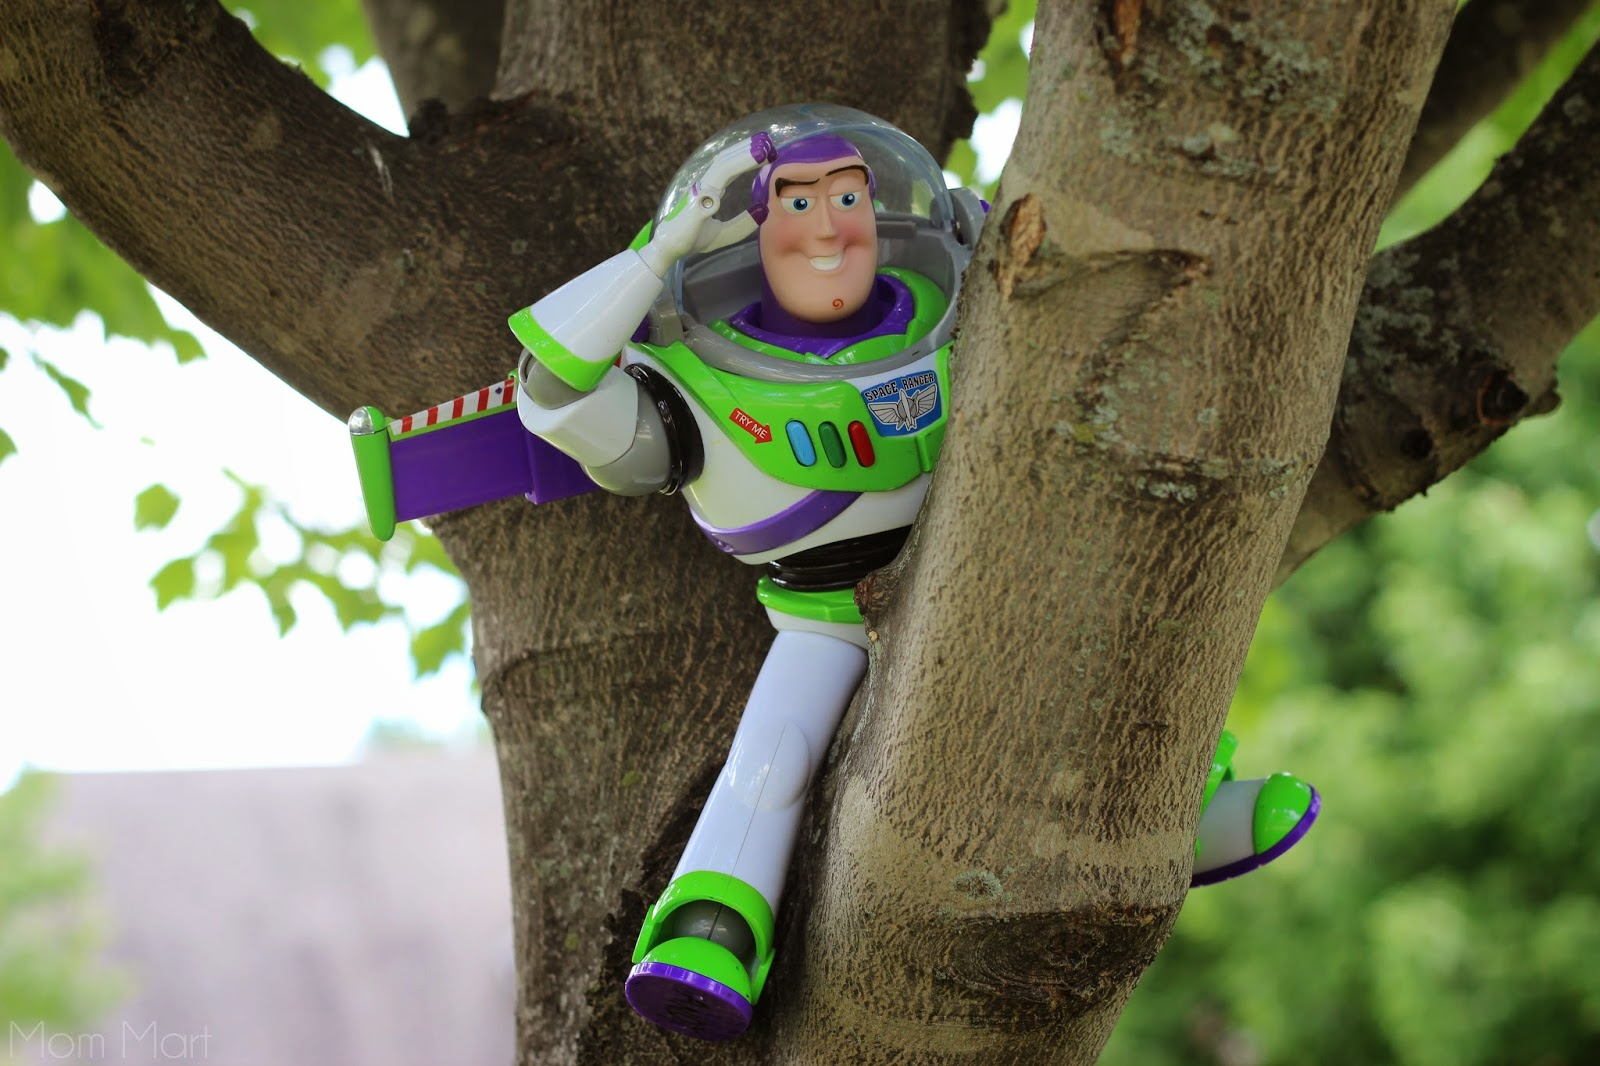 A few of our favorite toys #ToyStoryToys #Disney #PlayTime #BuzzLightYear